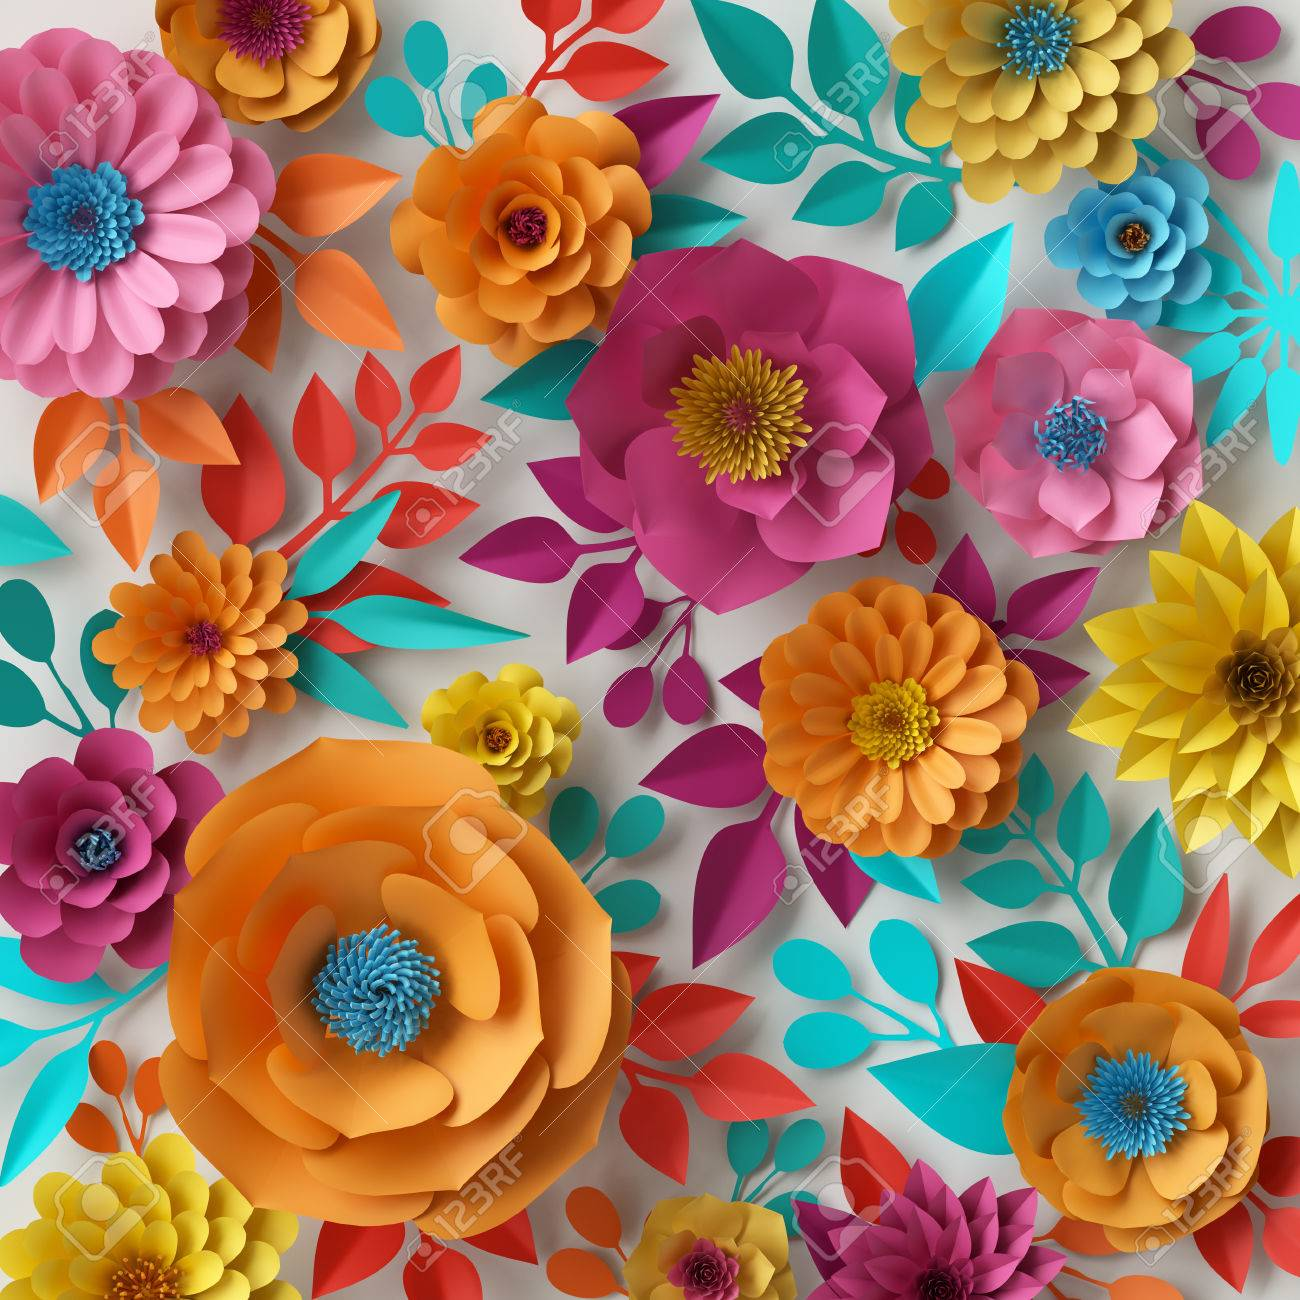 3d Render Digital Illustration Colorful Paper Flowers Wallpaper